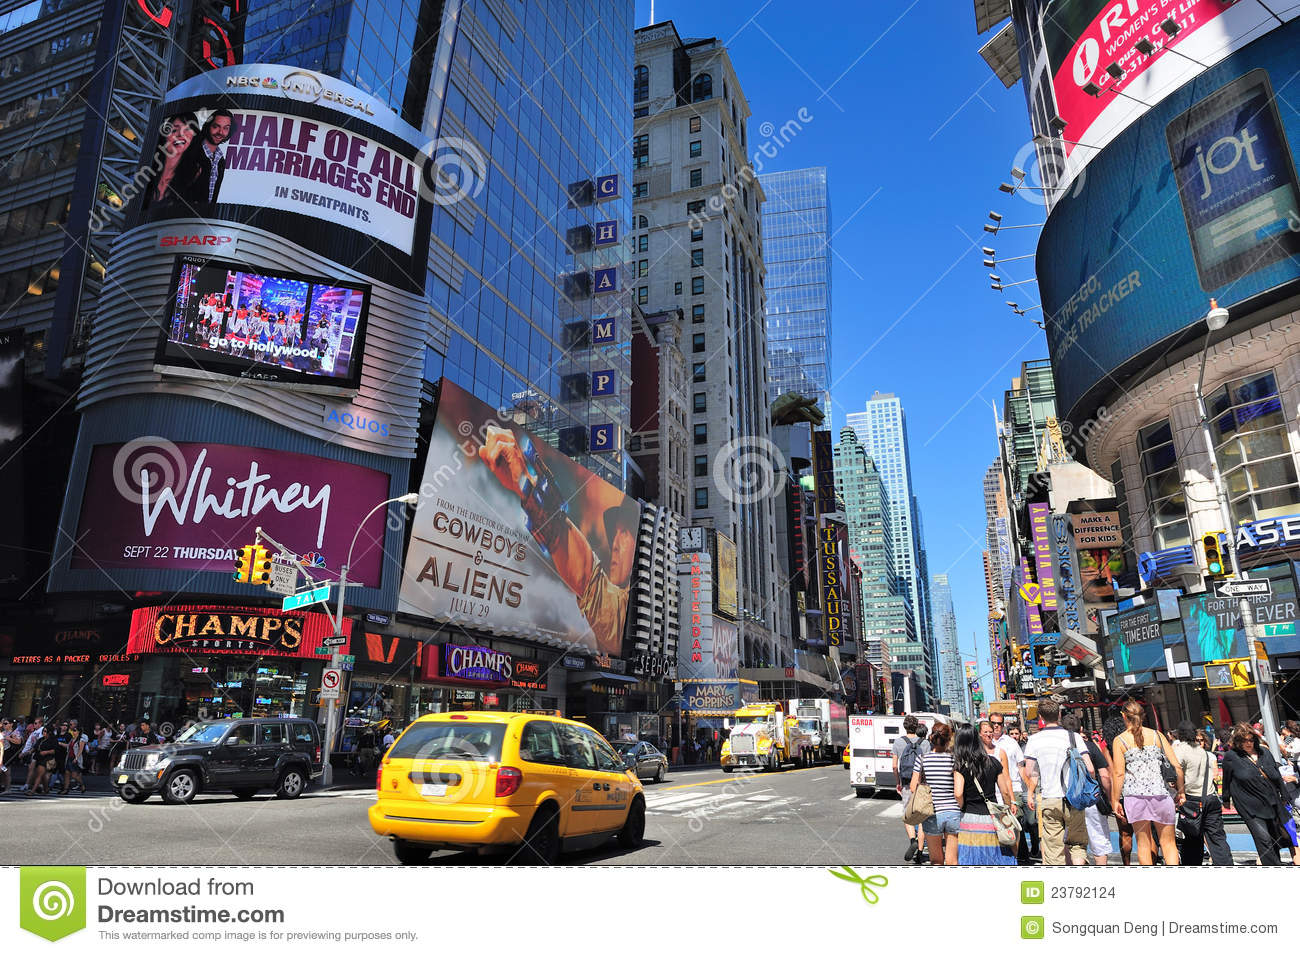 View detailed information and reviews for W 42nd St in New York, New York and get driving directions with road conditions and live traffic updates along the way.